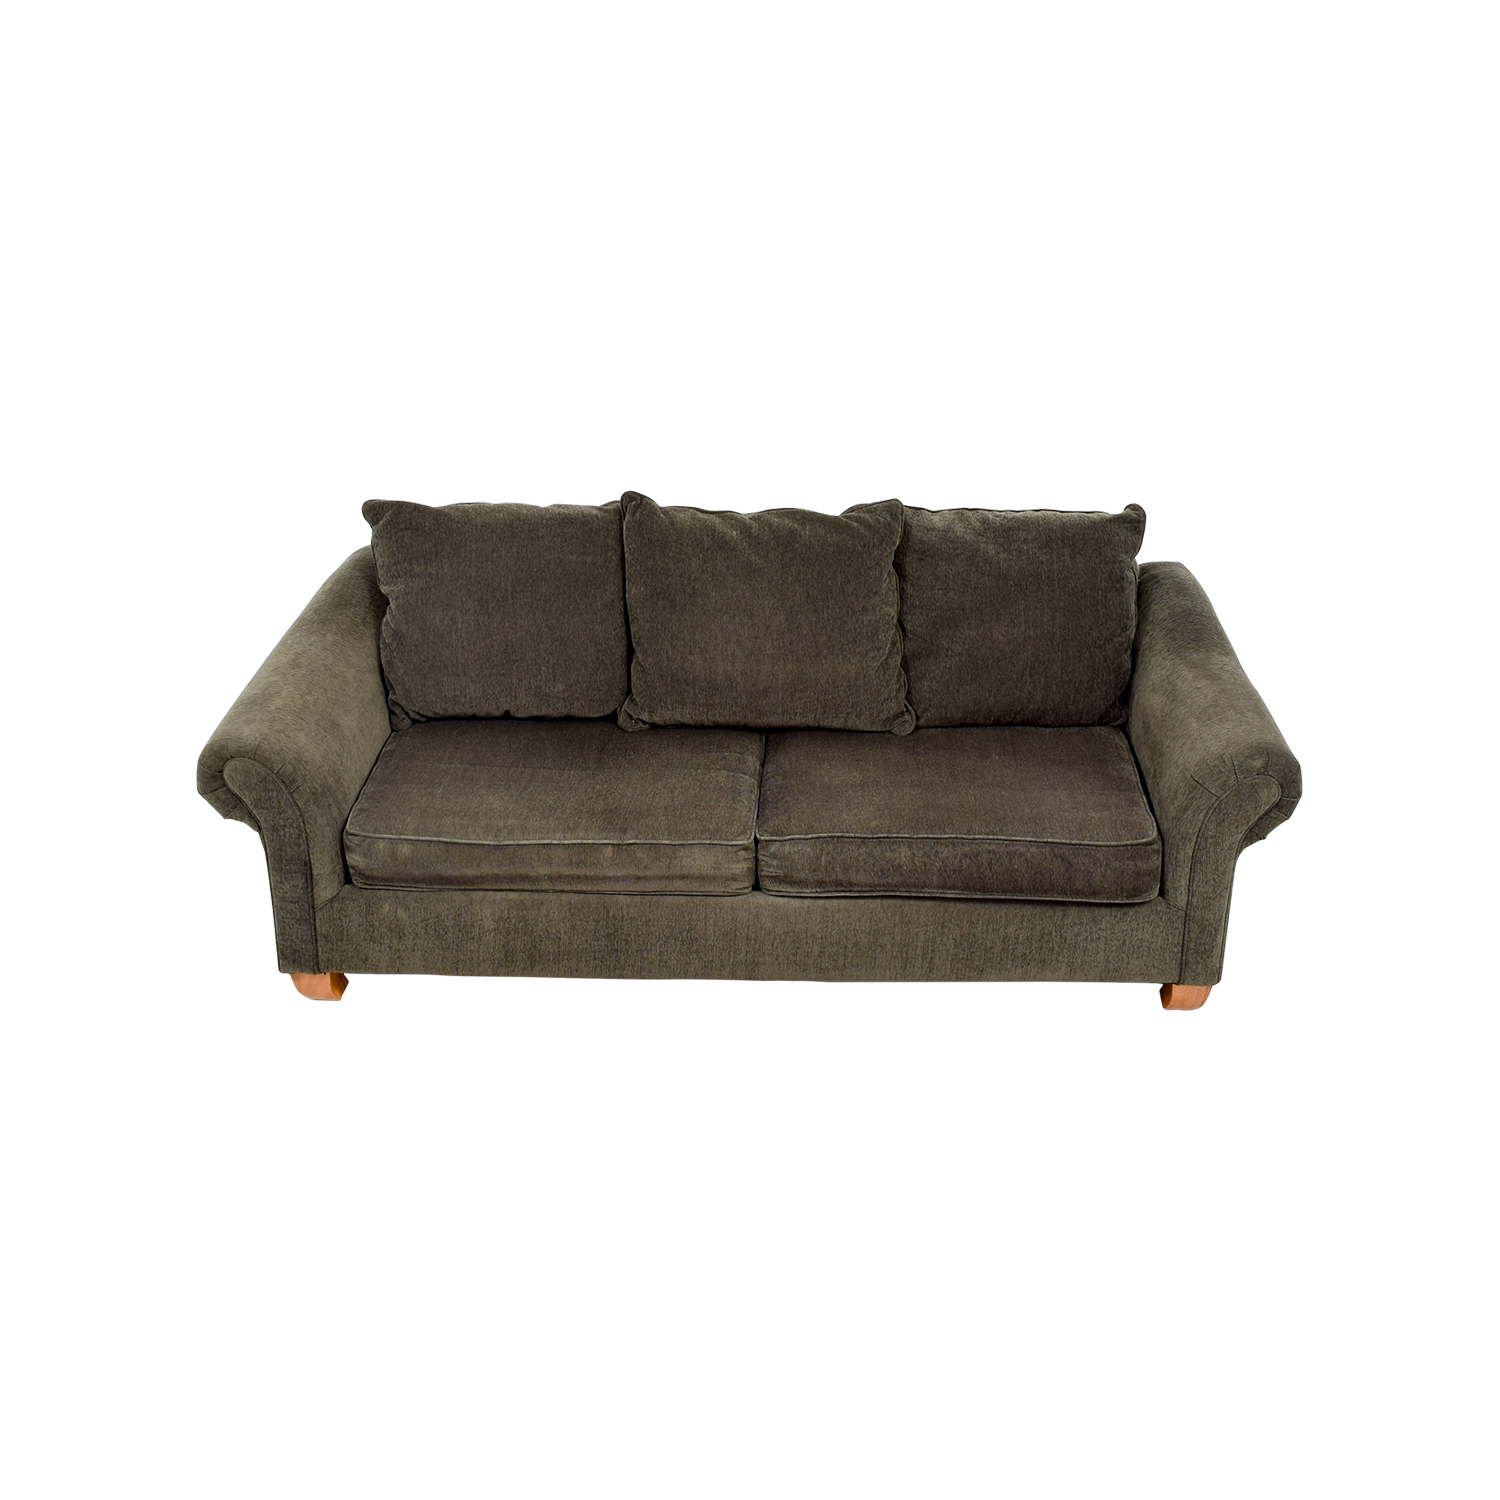 shop Star Furniture Star Furniture Brown Curved Arm Sofa online